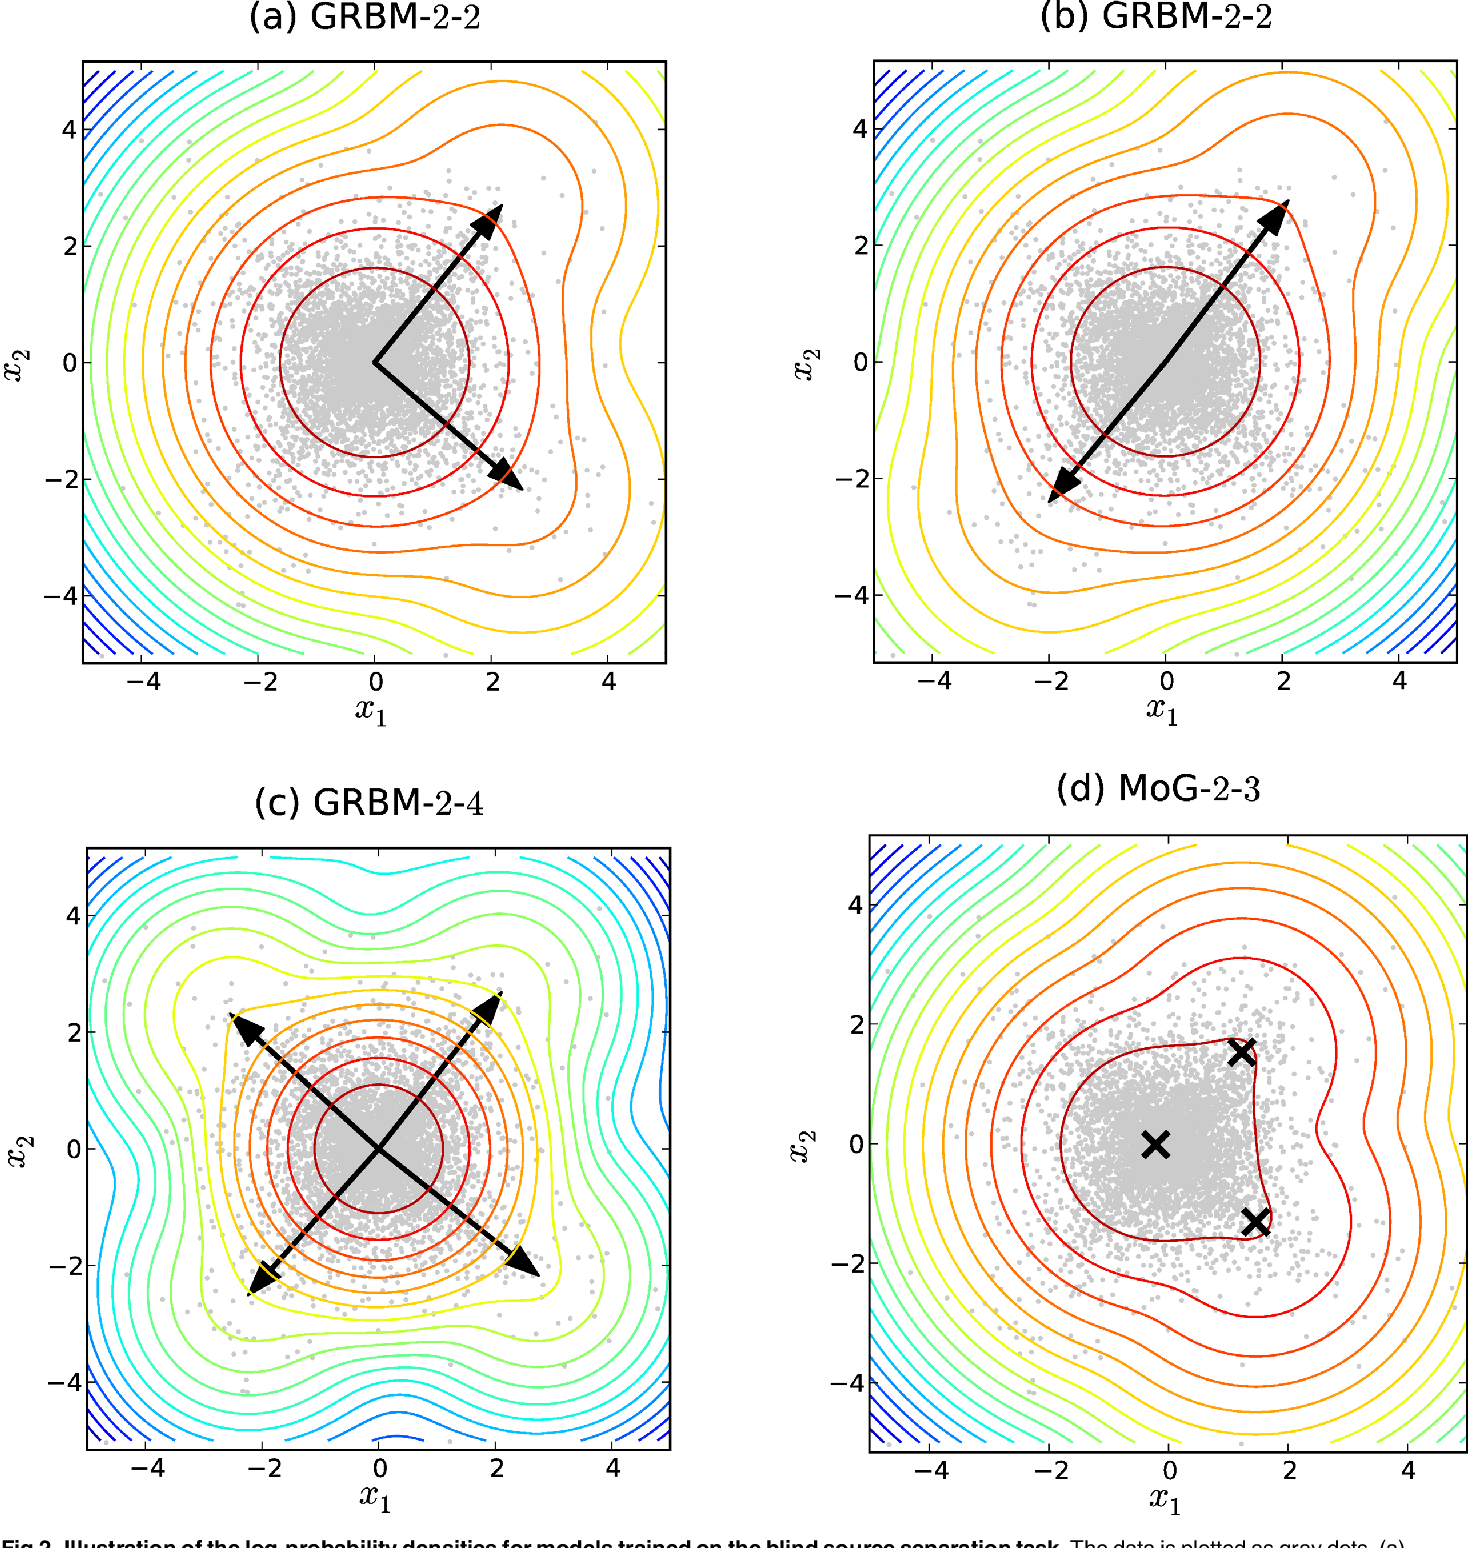 Figure 3 for Gaussian-binary Restricted Boltzmann Machines on Modeling Natural Image Statistics